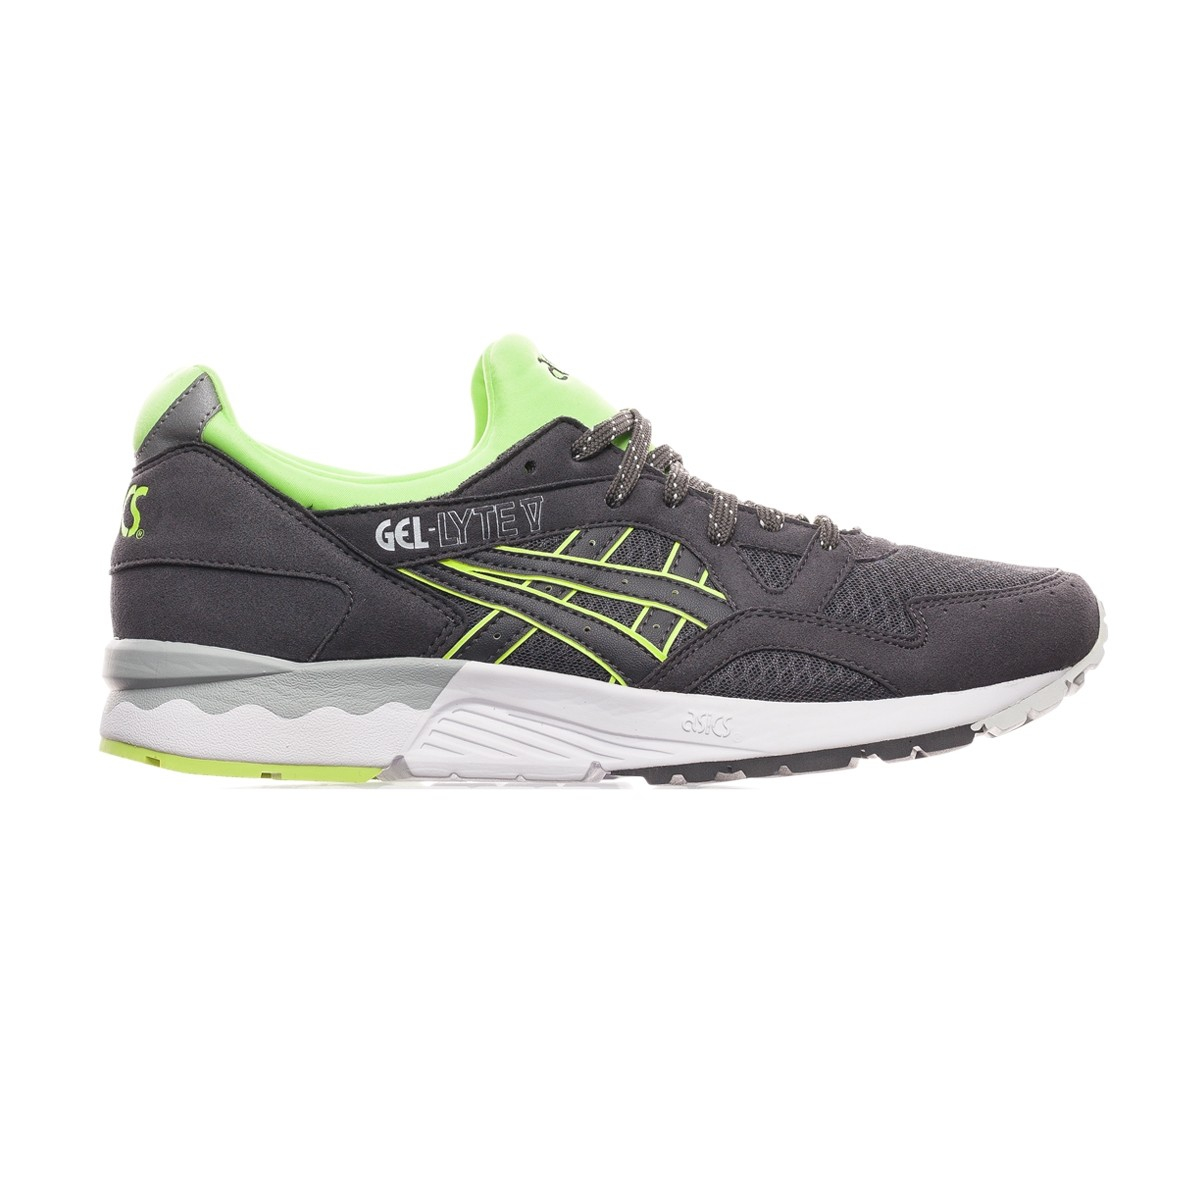 Asics Gel Lyte V Shoes Black White Green